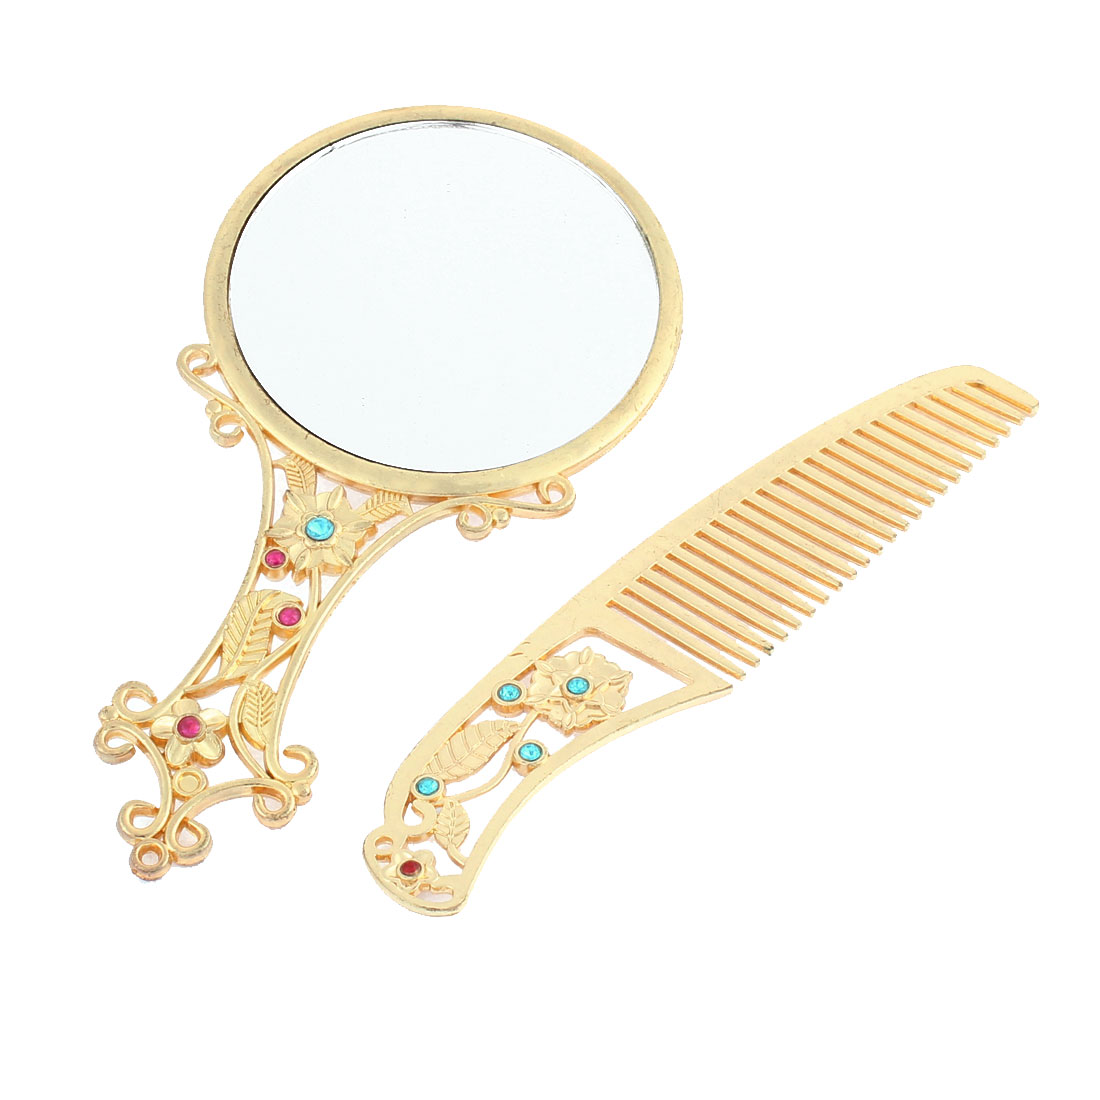 Woman Portable Dome Shape Handheld Makeup Cosmetic Mirror Comb Set Gold Tone